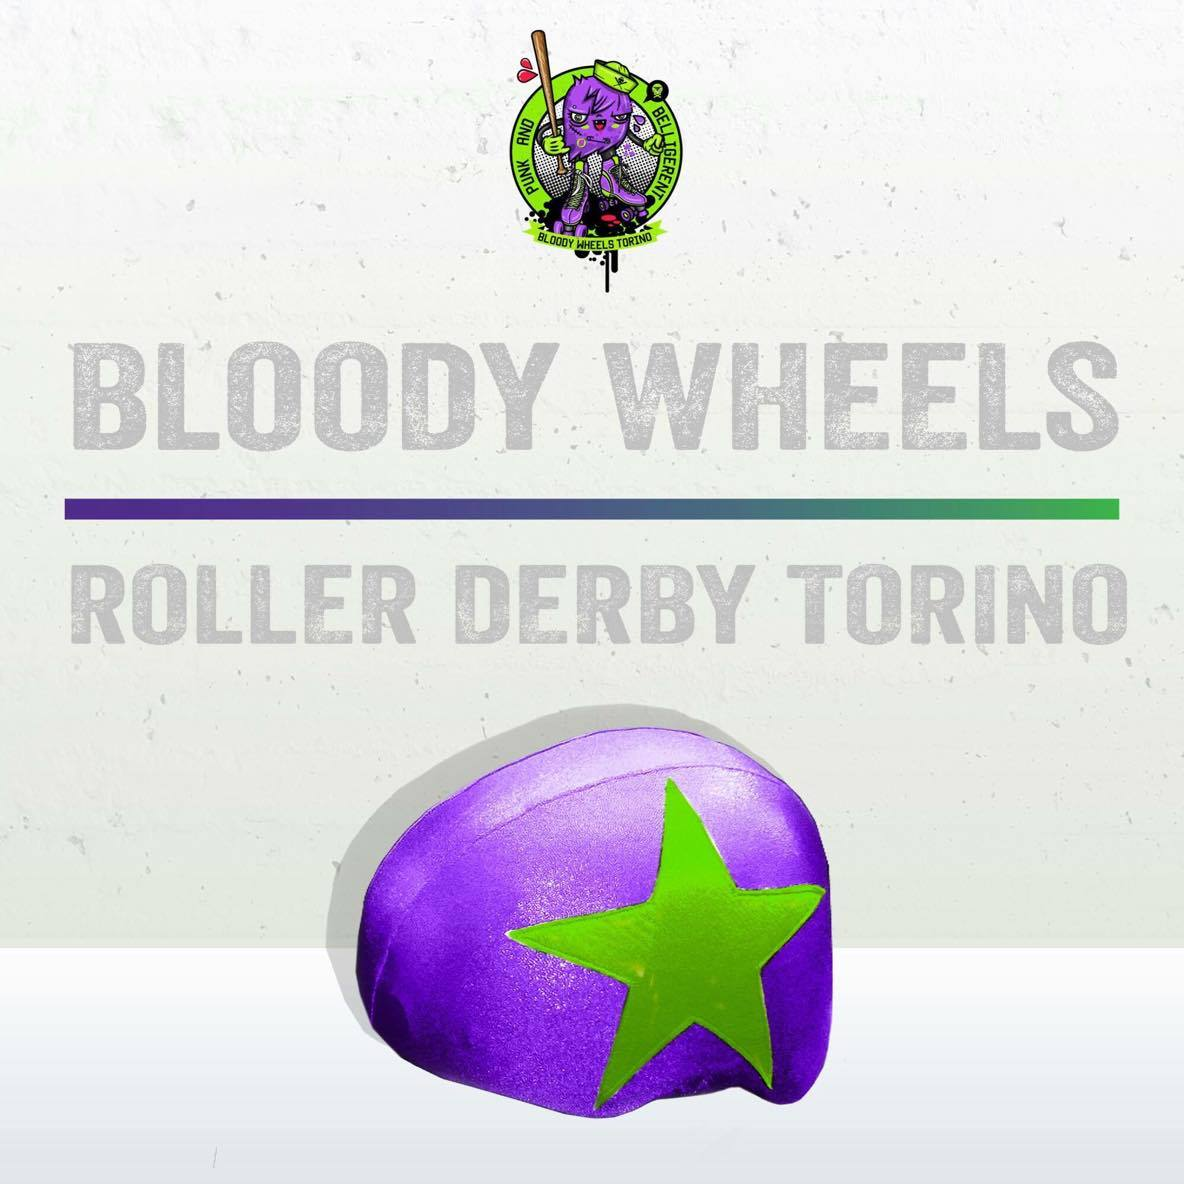 Blood Drive by Bloody Wheels Roller Derby Torino